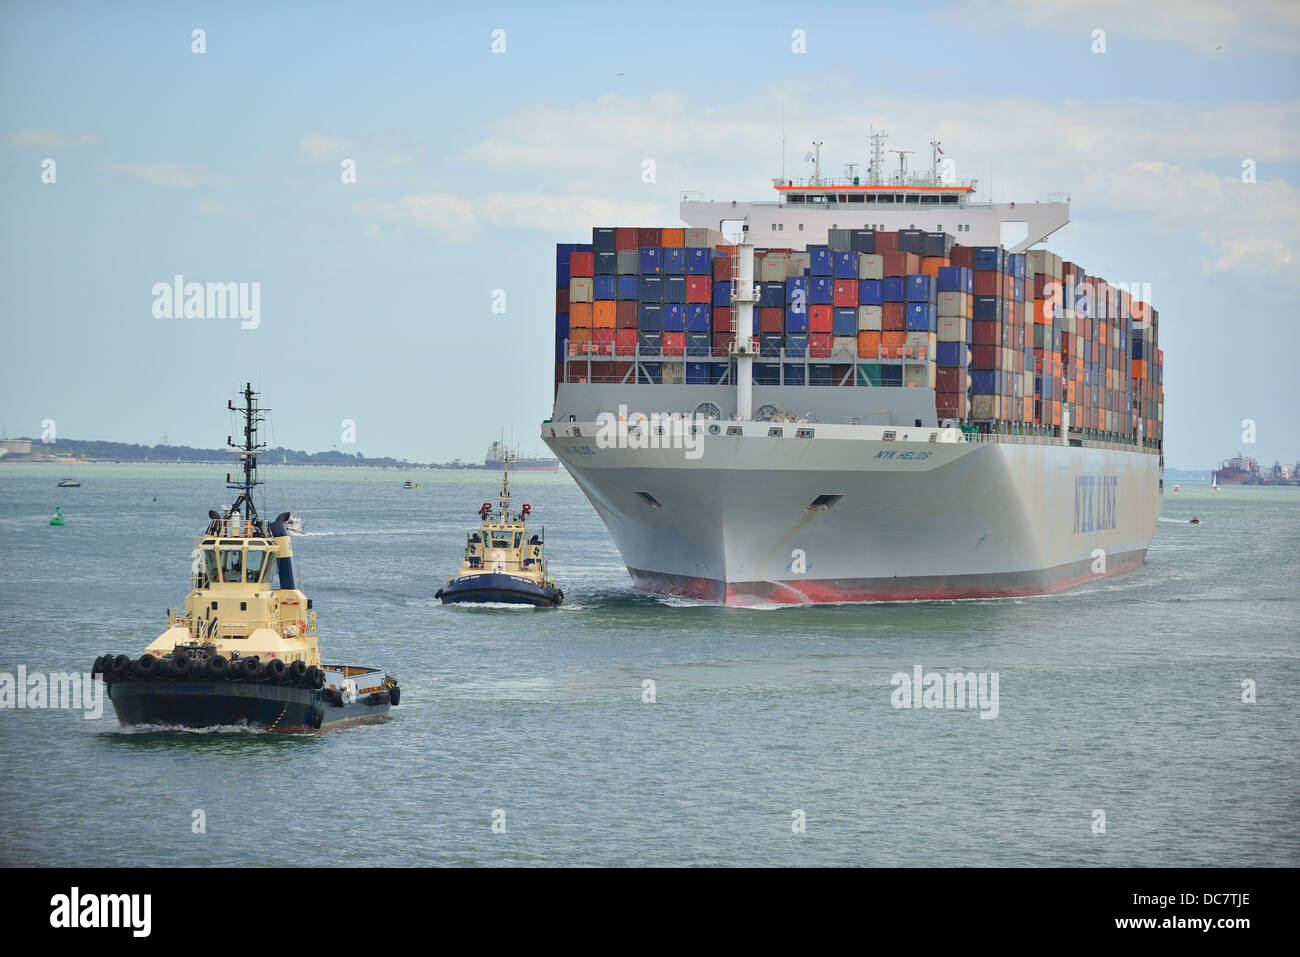 Container ship  in Southampton Waters  with two tugs assisting ship to its docking berth at Southampton , UK Stock Photo